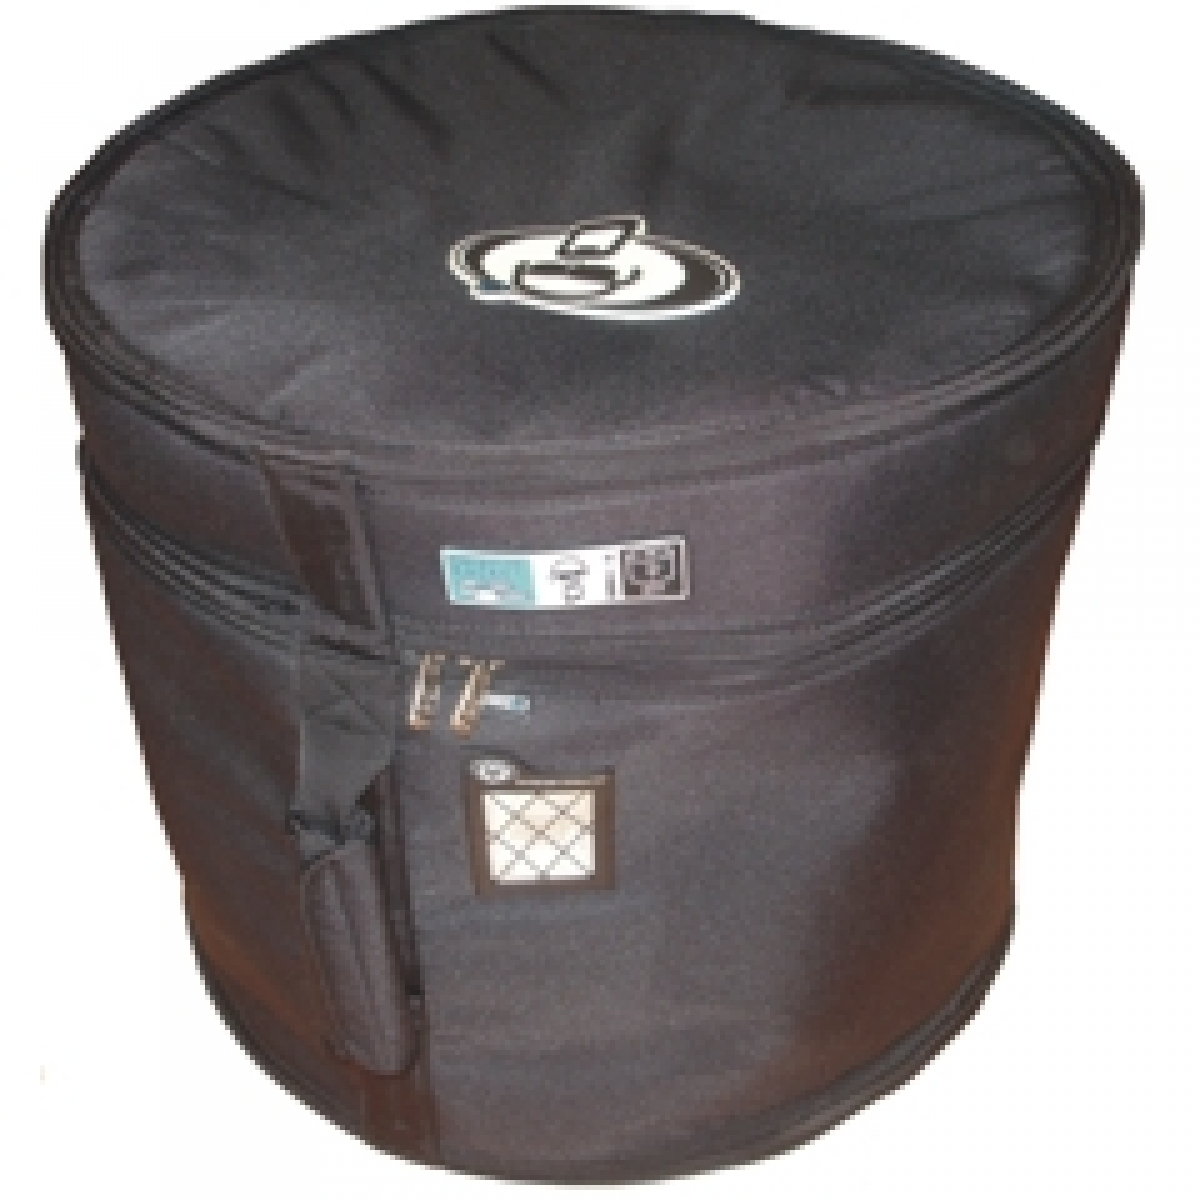 protection racket 14 x 14 floor tom case 2014 00 at promenade music. Black Bedroom Furniture Sets. Home Design Ideas